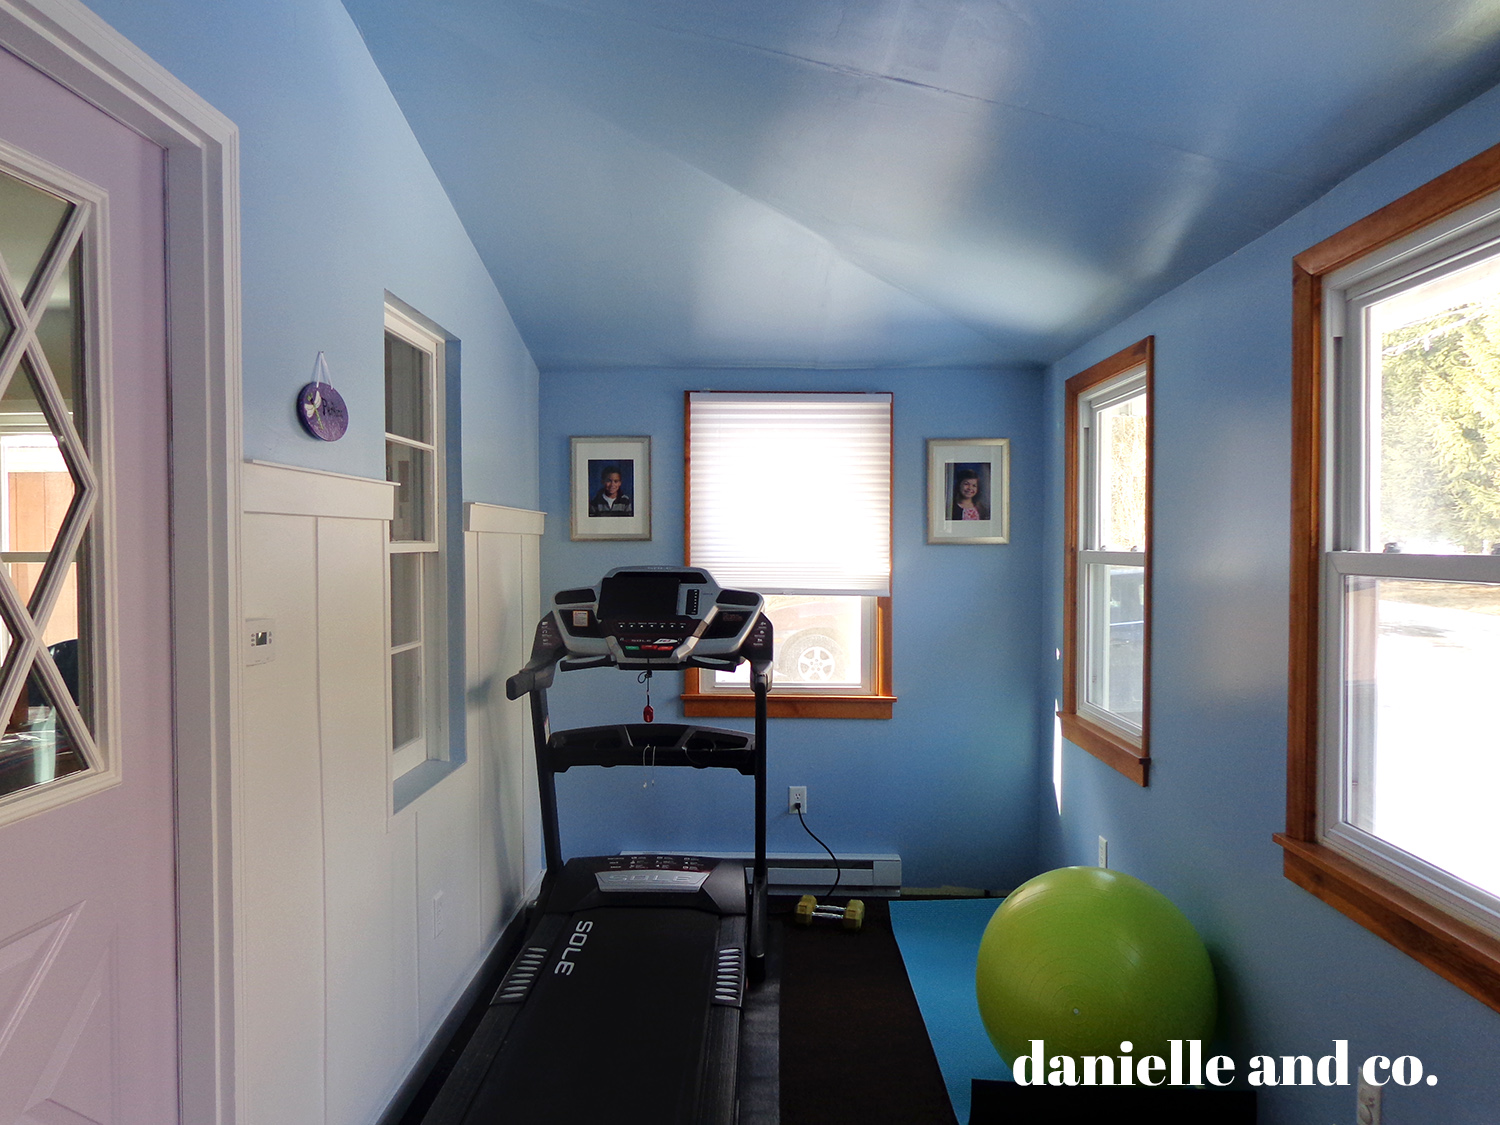 Random stuff we just fixed, on danielleandco.com - old house renovation on a budget.